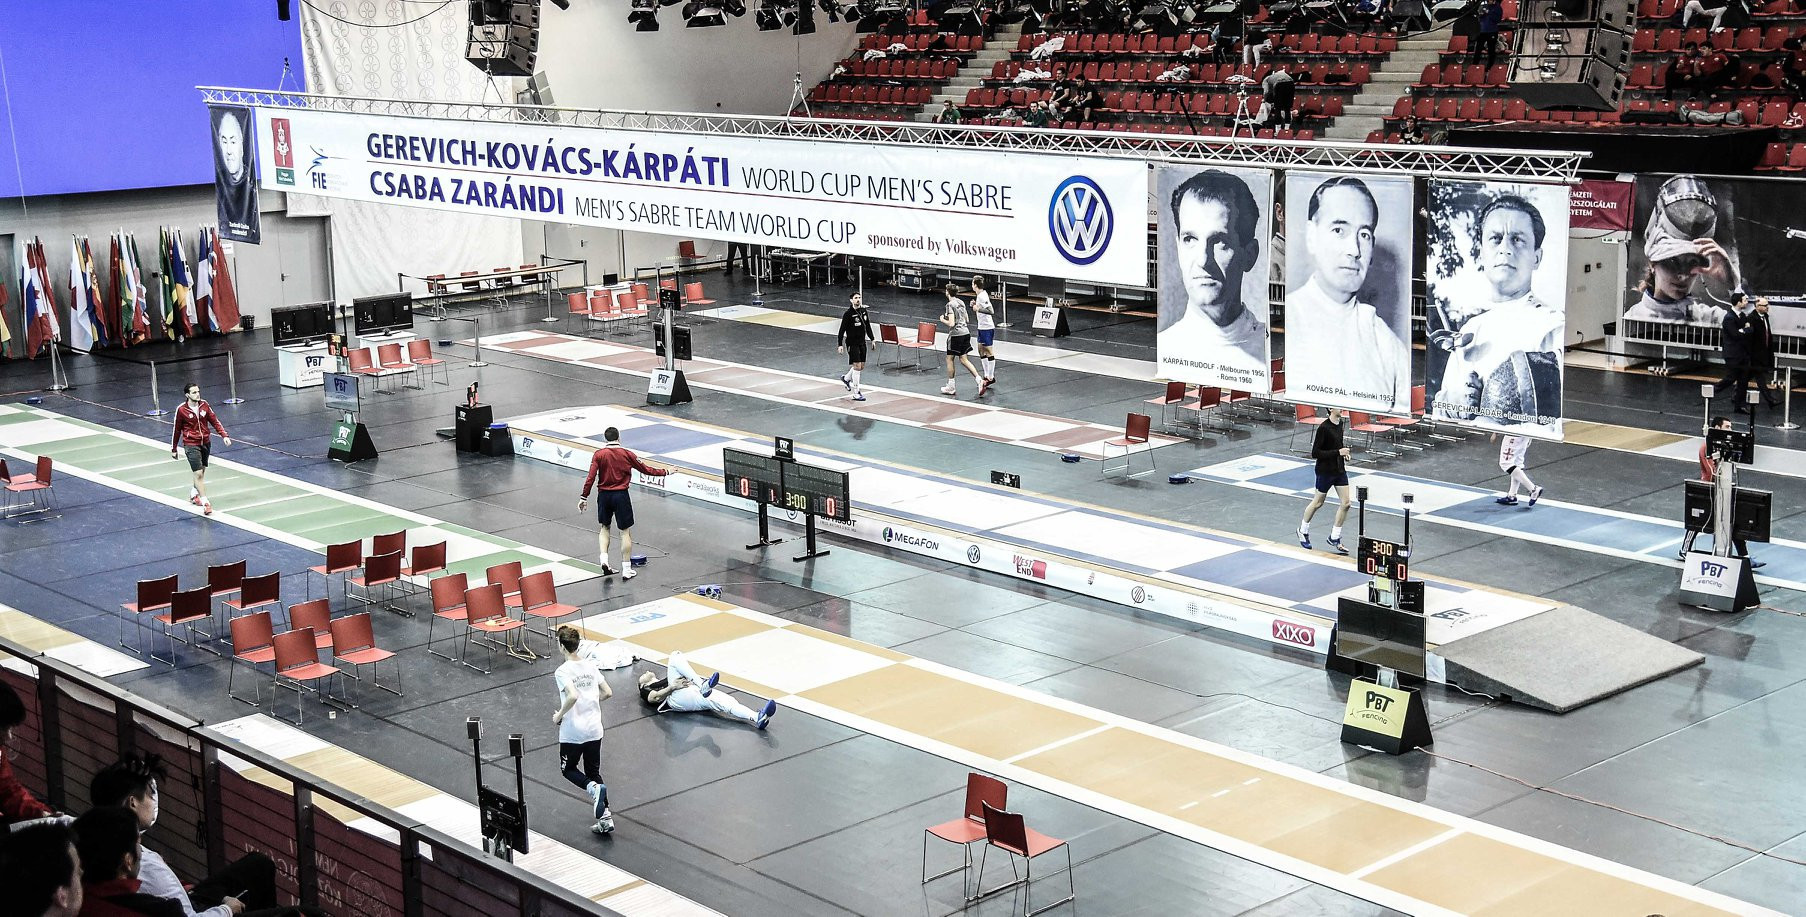 Top seed Dershwitz to begin FIE Men's Sabre World Cup campaign against home favourite in Budapest